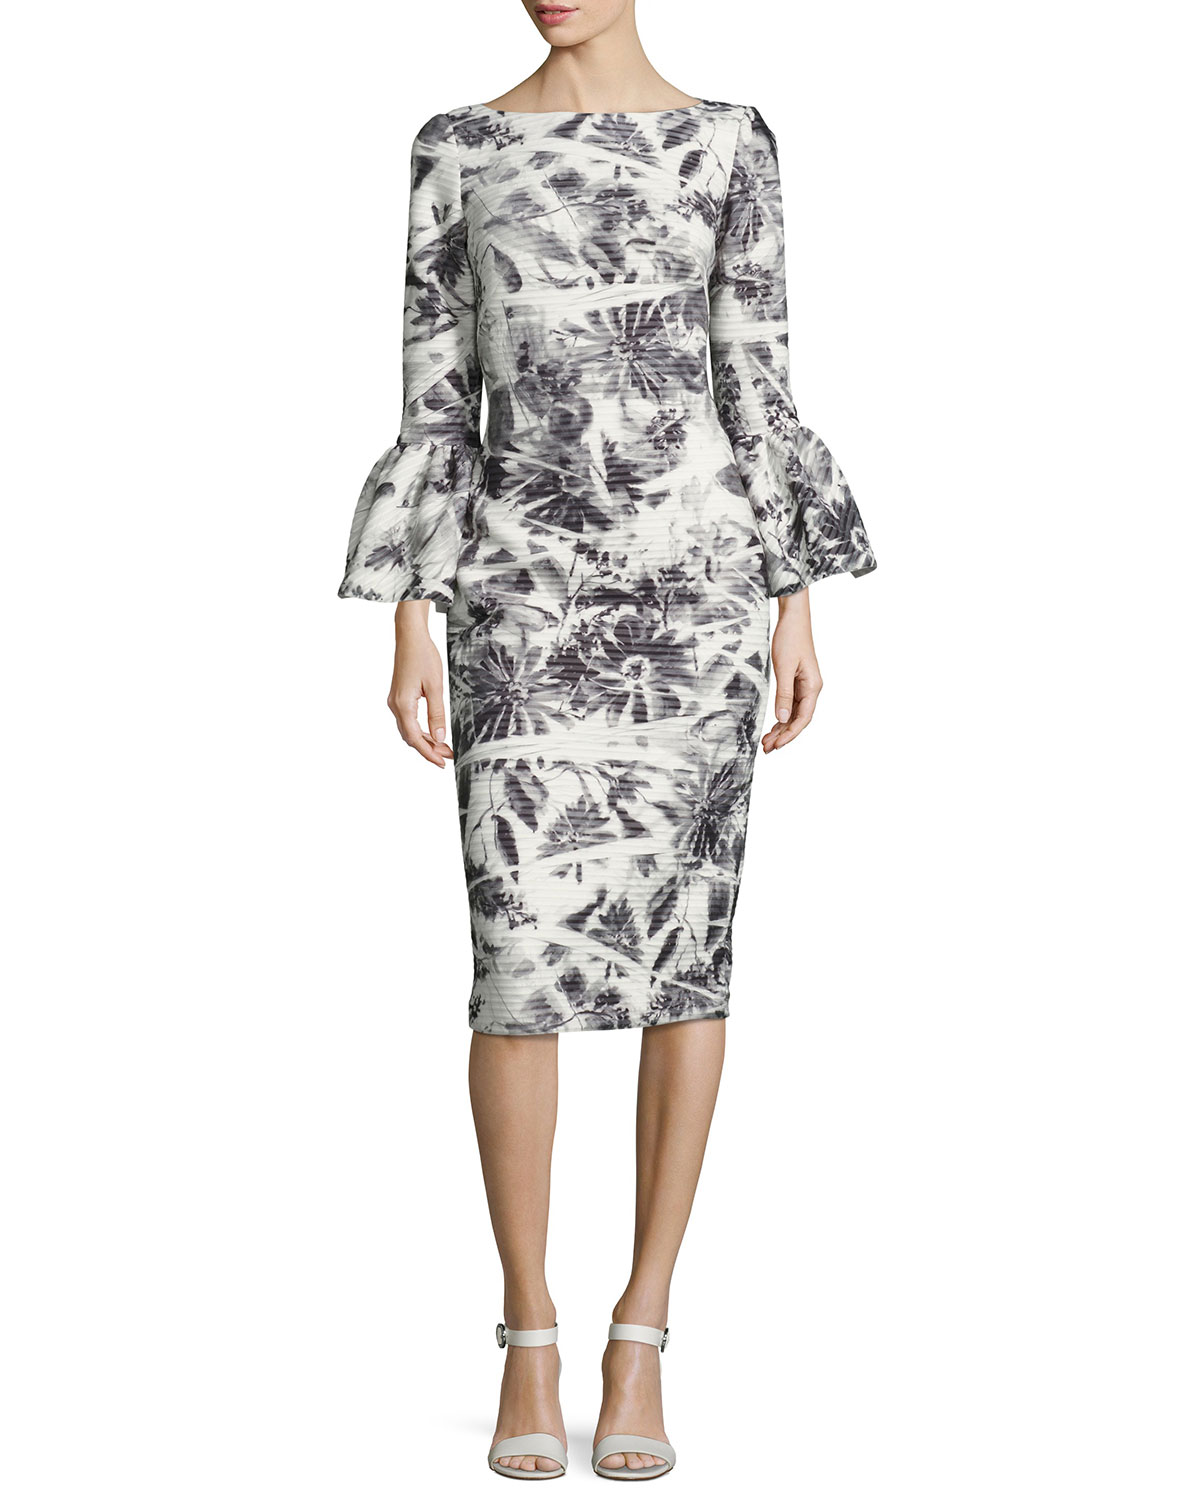 39568a244d5 White Cocktail Dresses Neiman Marcus - Gomes Weine AG